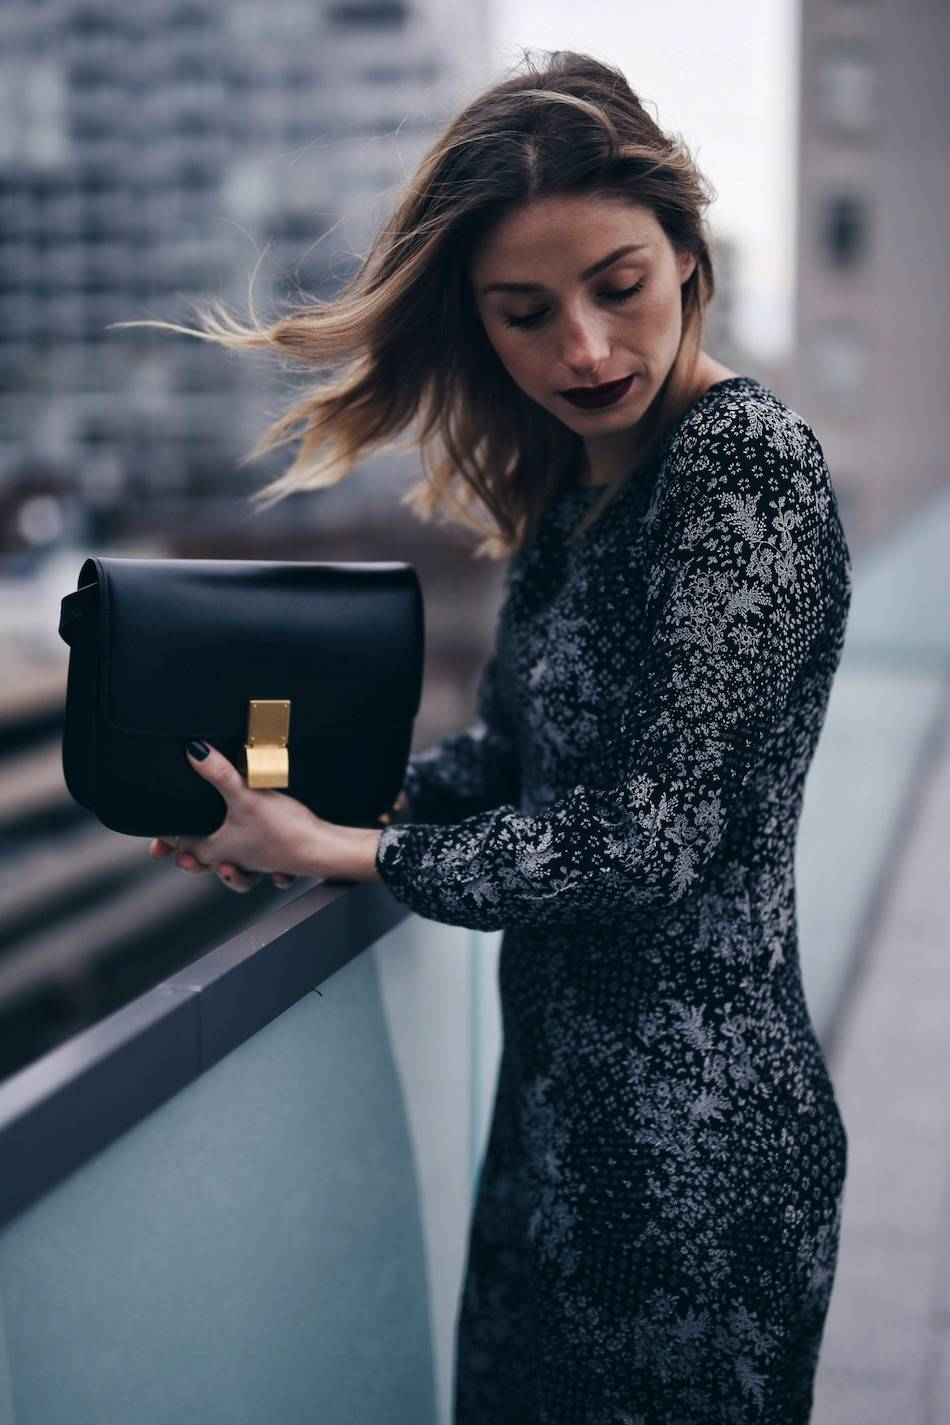 style-blogger-jill-lansky-of-the-august-diaries-with-easy-holiday-style-in-old-navy-print-dress-celine-box-bag-and-red-lipstick